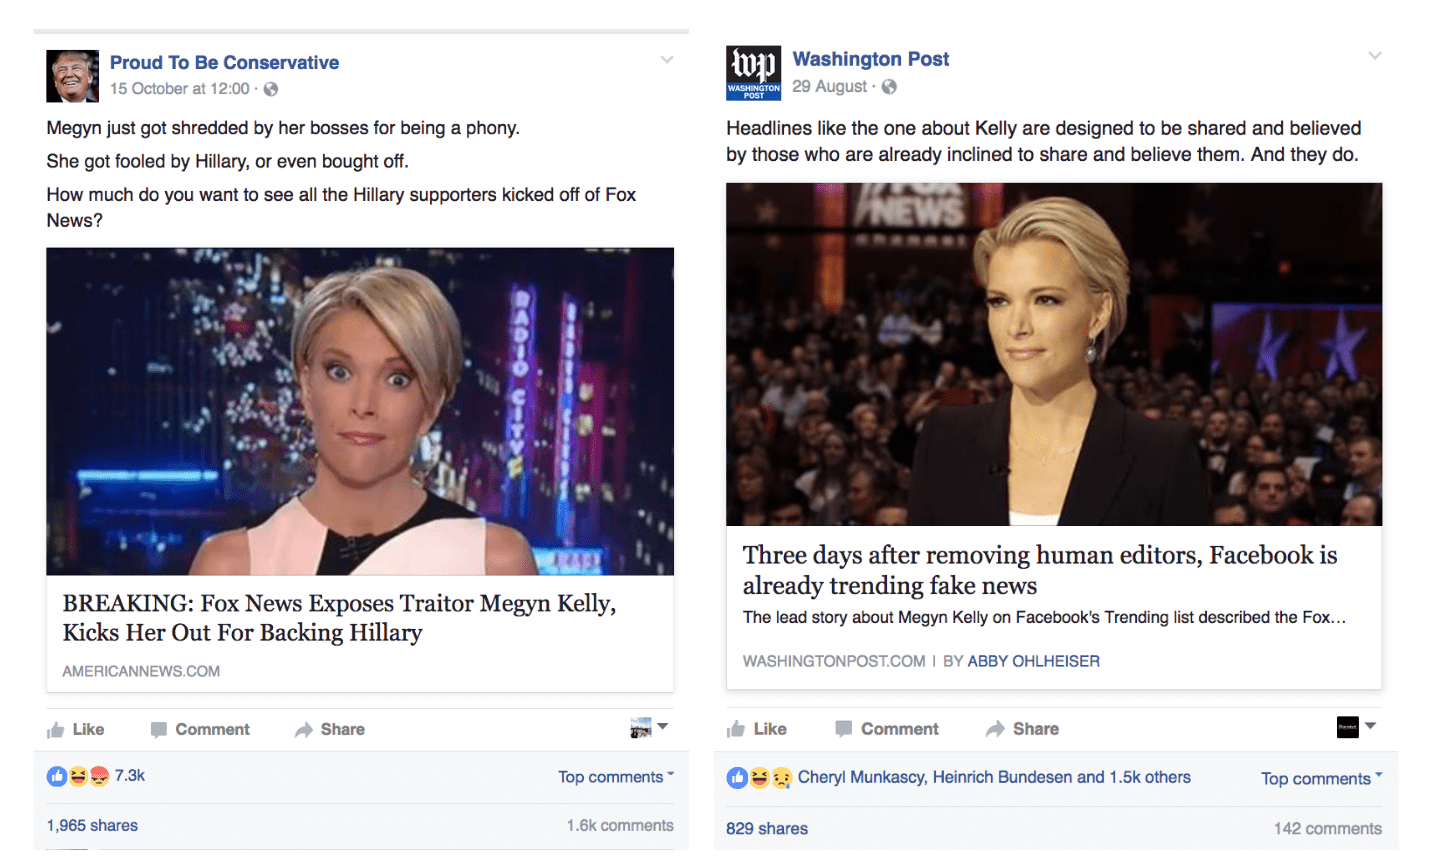 Compare and contrast. Fake post (left) does much better than earlier correction post (right).